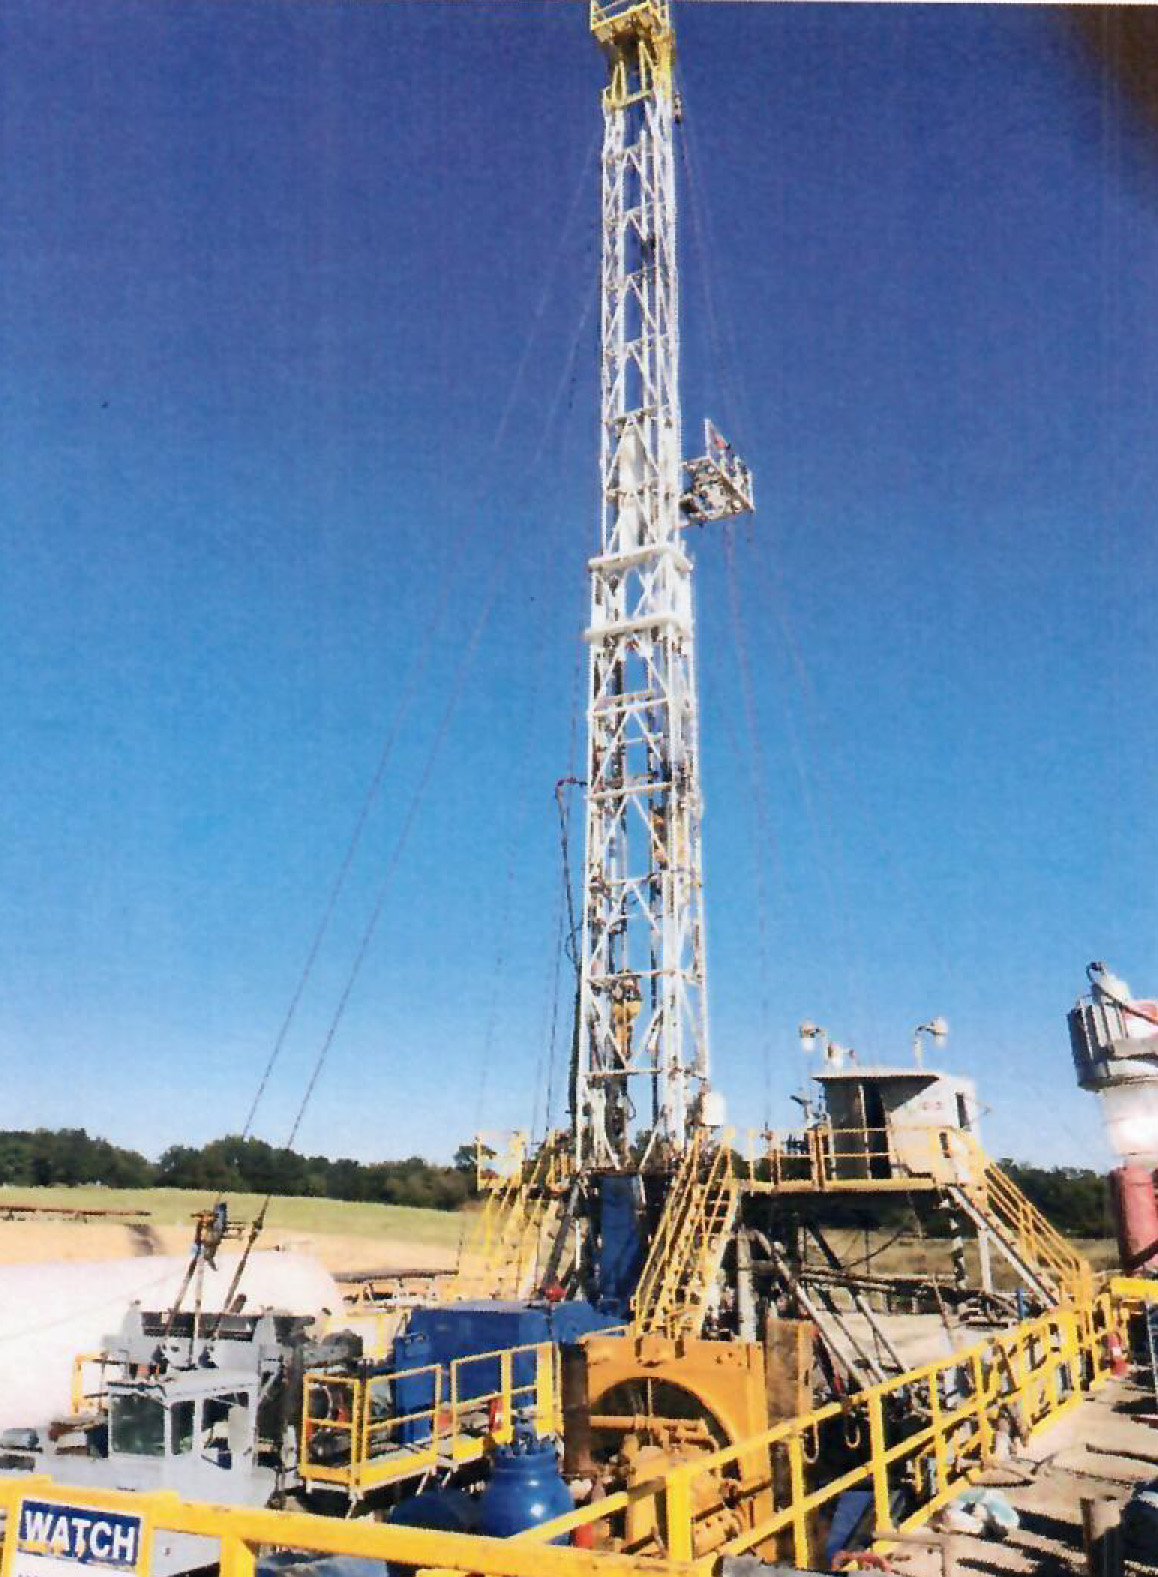 750HP drilling rigs for sale! (subject to prior sale)